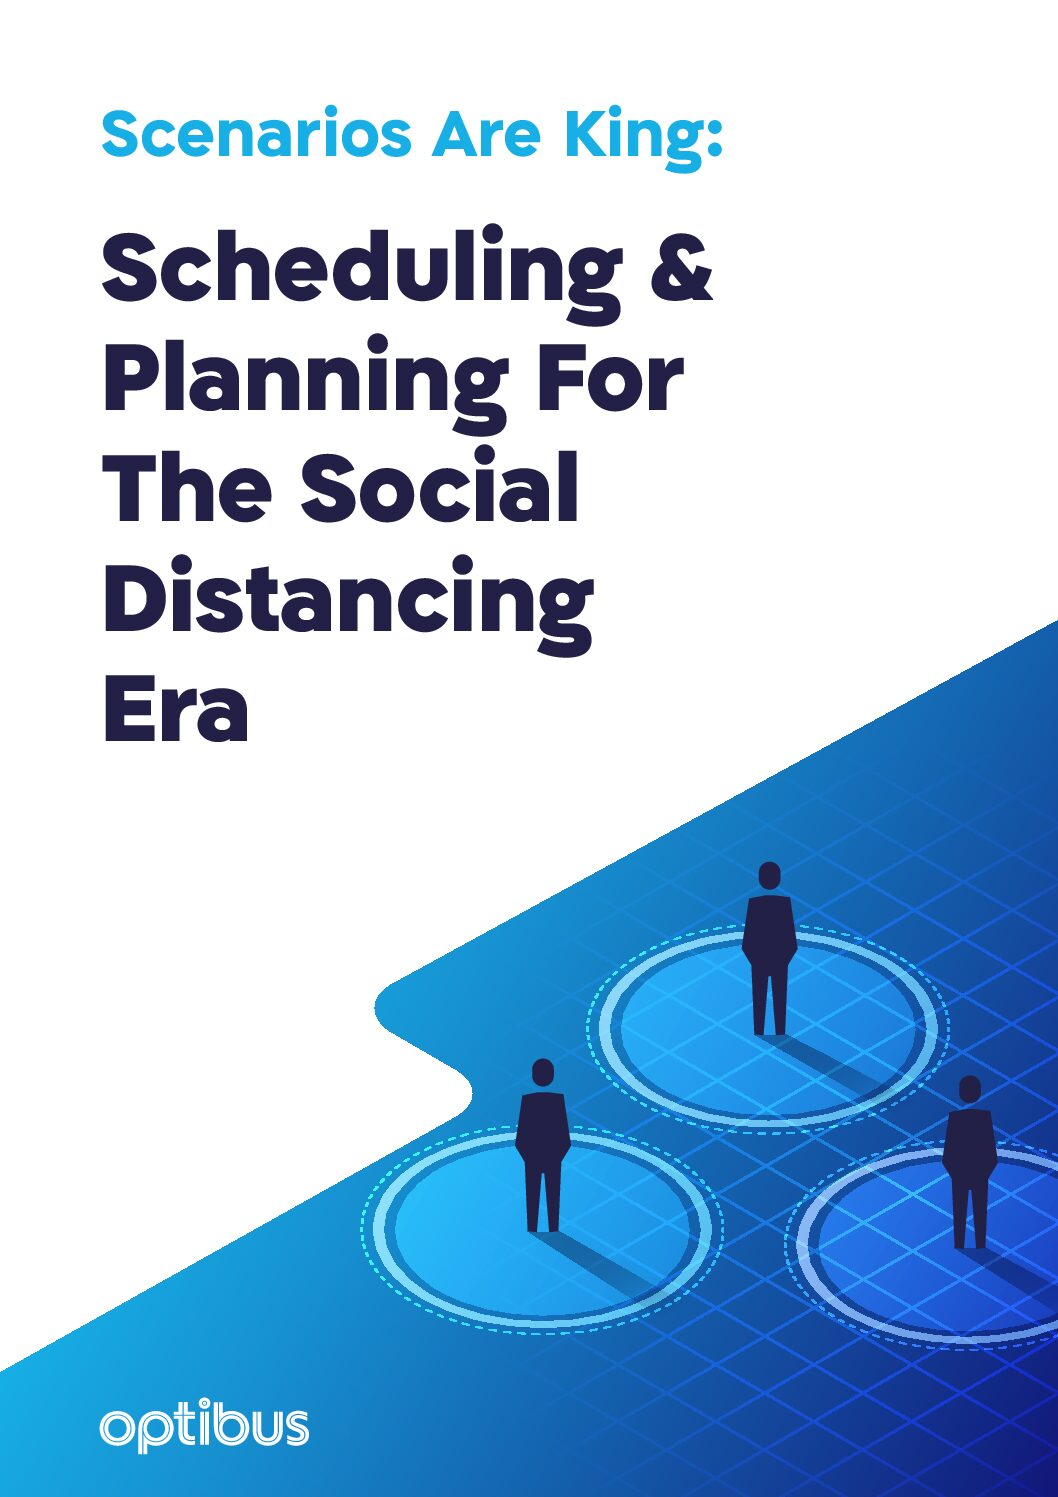 Scheduling & Planning For The Social Distancing Era